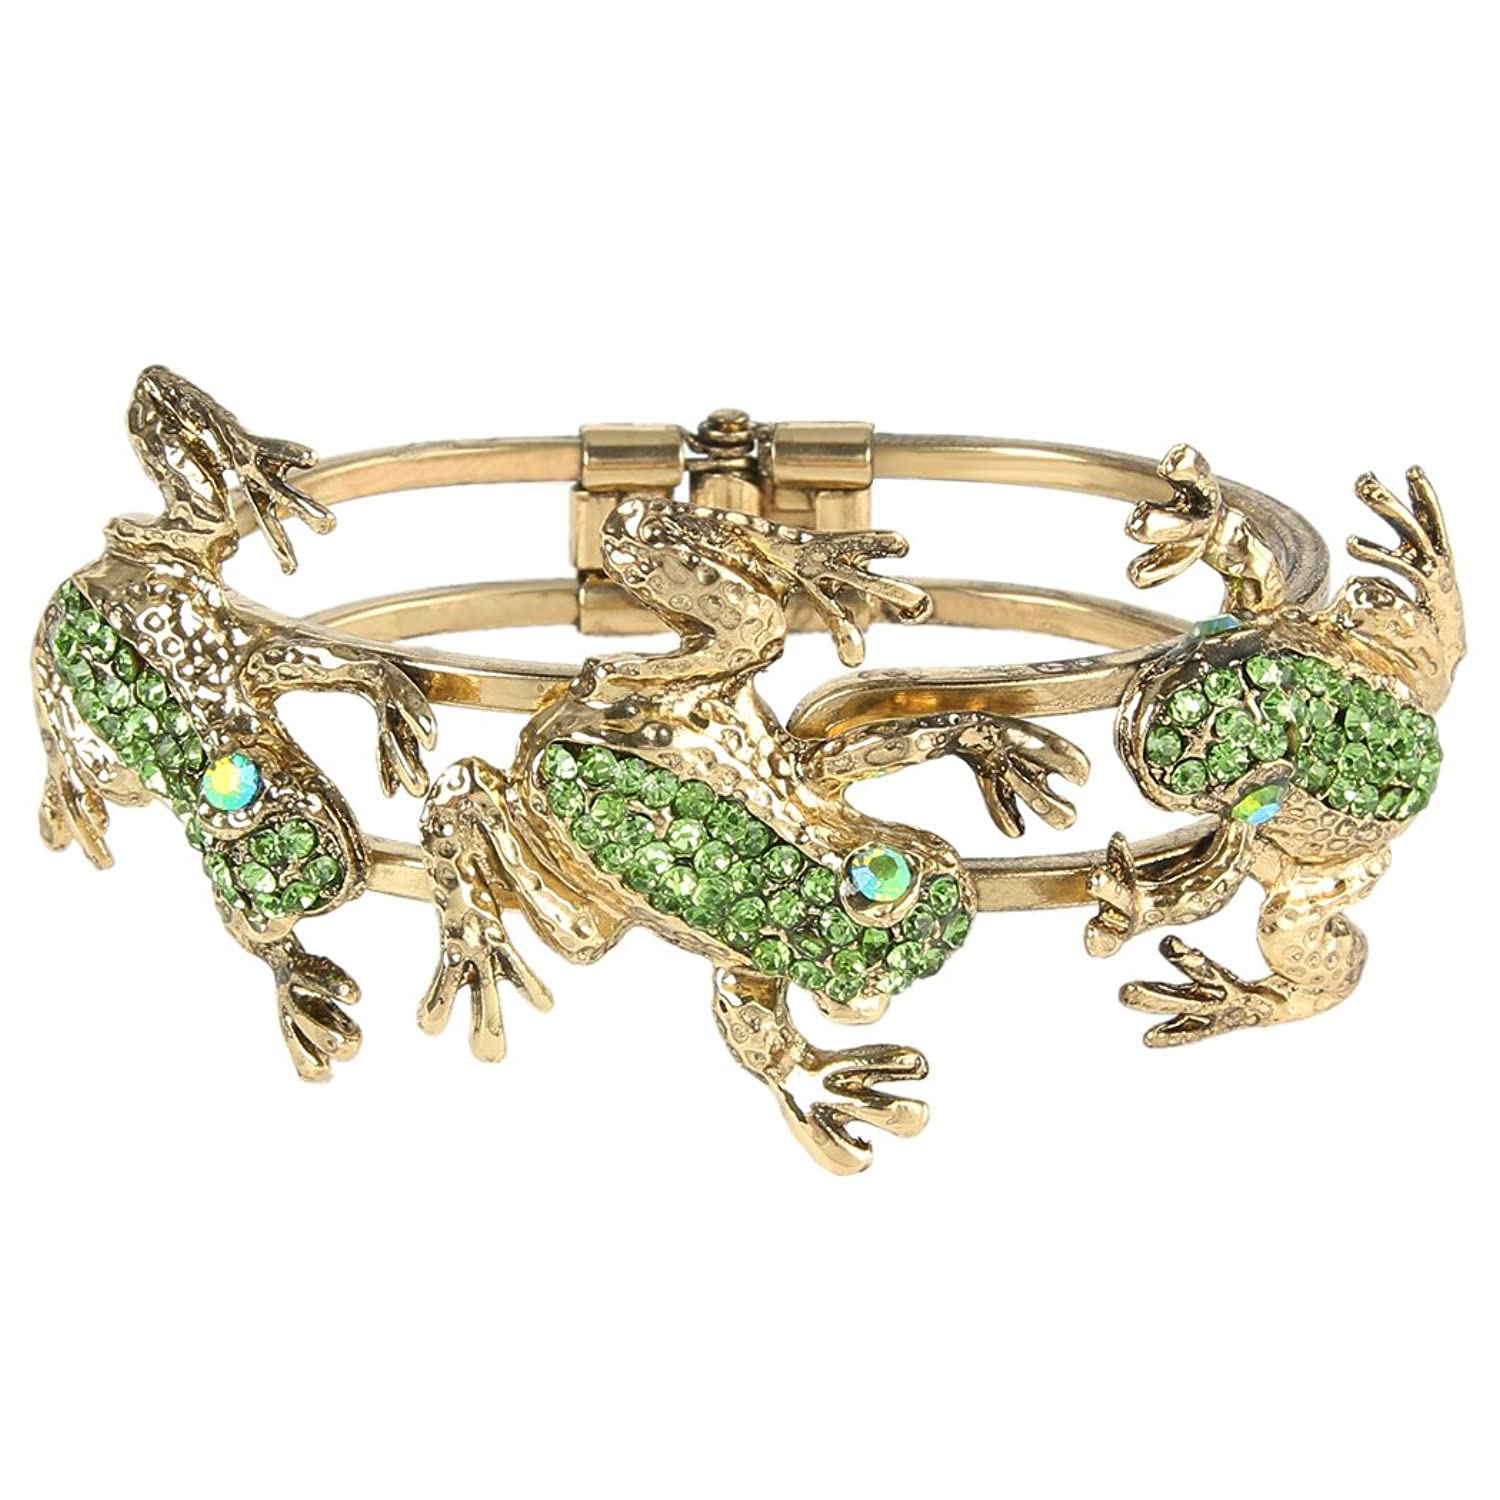 Vintage Style Jewelry, Retro Jewelry EVER FAITH Womens Austrian Crystal Vintage Inspired 3 Frogs Bangle Bracelet $16.99 AT vintagedancer.com